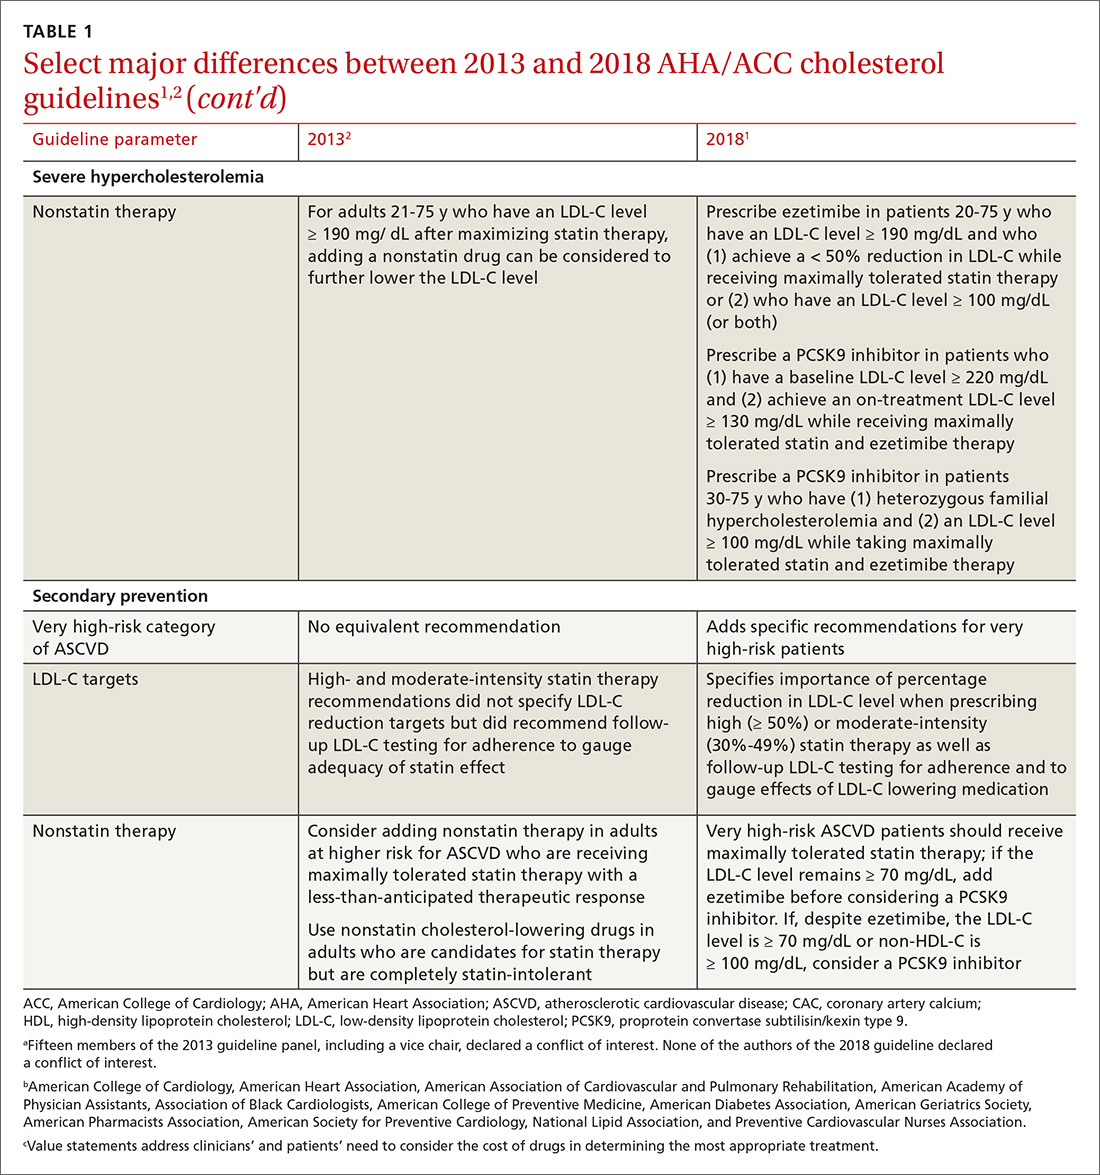 Select major differences between 2013 and 2018 AHA/ACC cholesterol guidelines